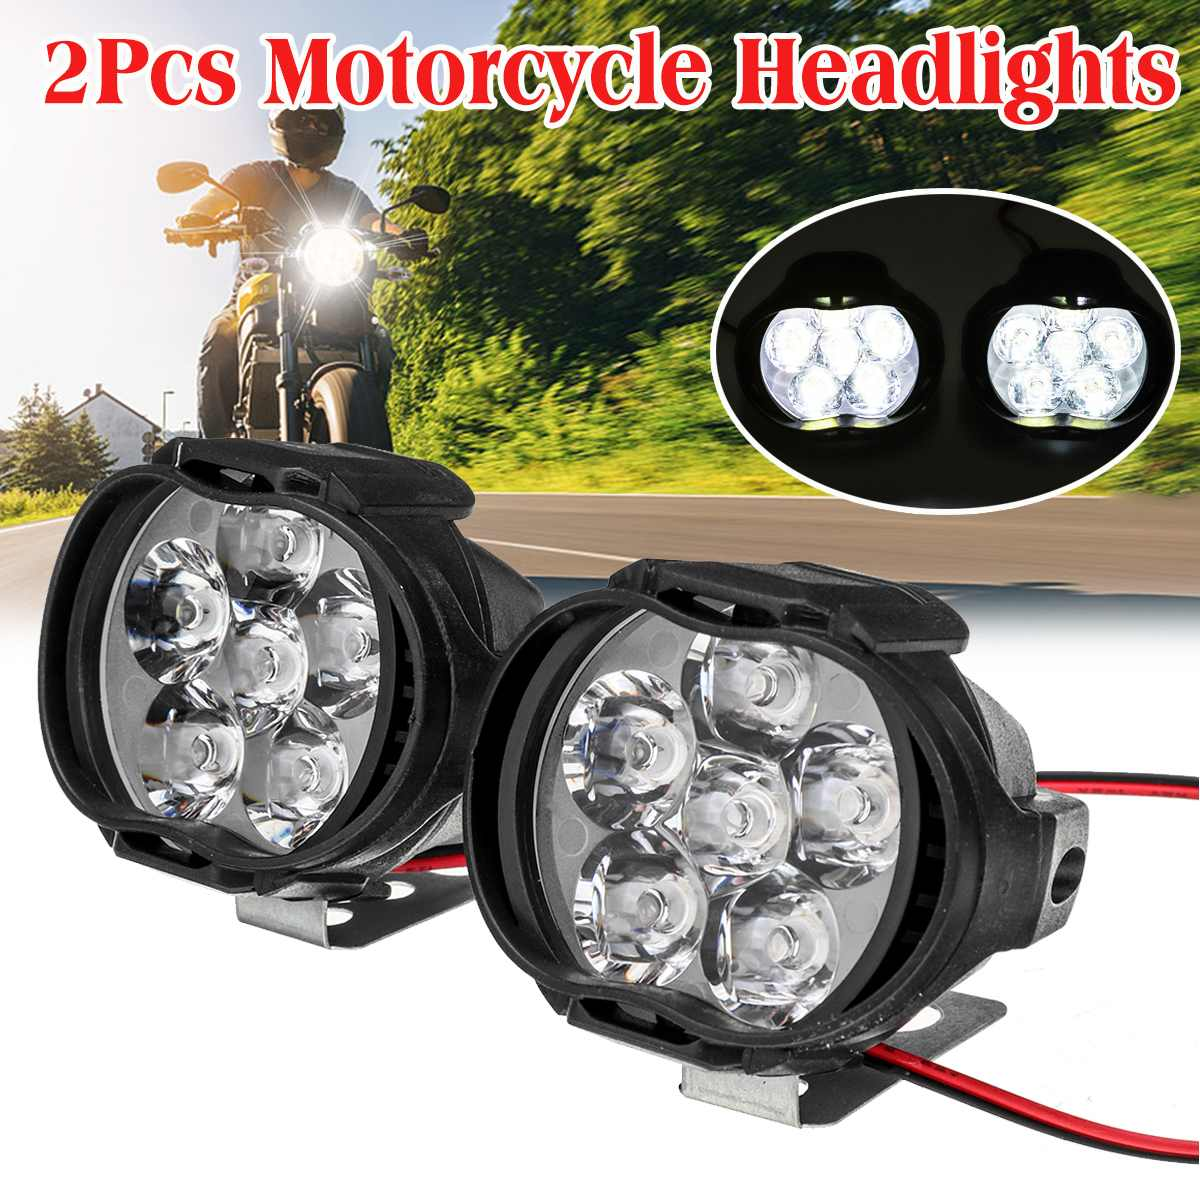 4/6/9LED 10W Car Fog Lamp LED Fog Spot Head Light Lamp Motorcycle Headlights Motorbike Driving Lighting Fog Lamp Universal